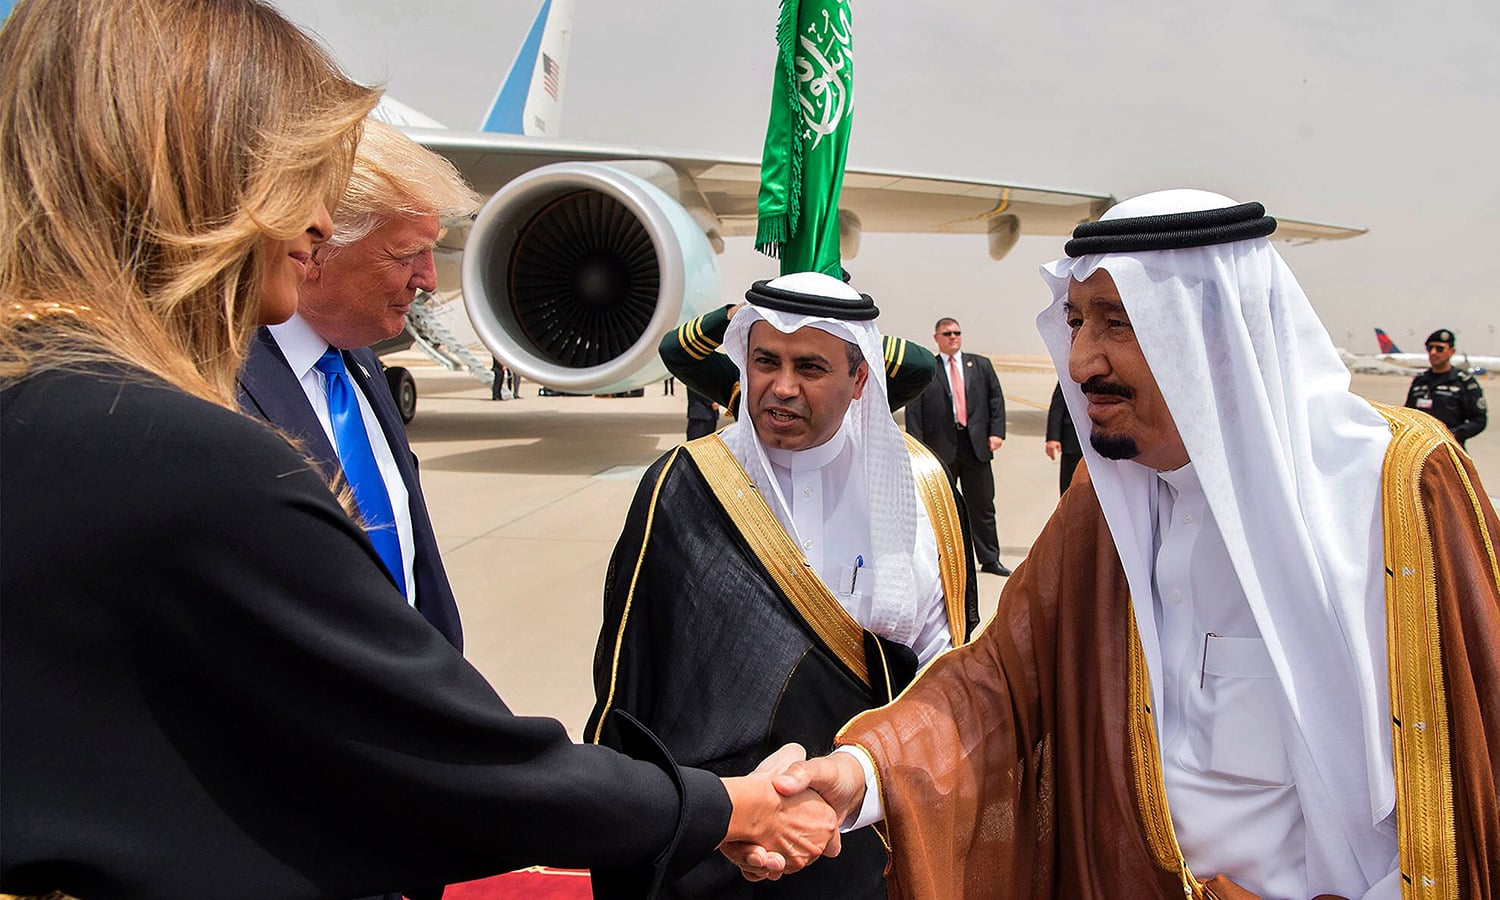 US First Lady Melania Trump (L) shakes hands with Saudi King Salman bin Abdulaziz al-Saud (R) upon arrival at King Khalid International Airport. ─ AFP